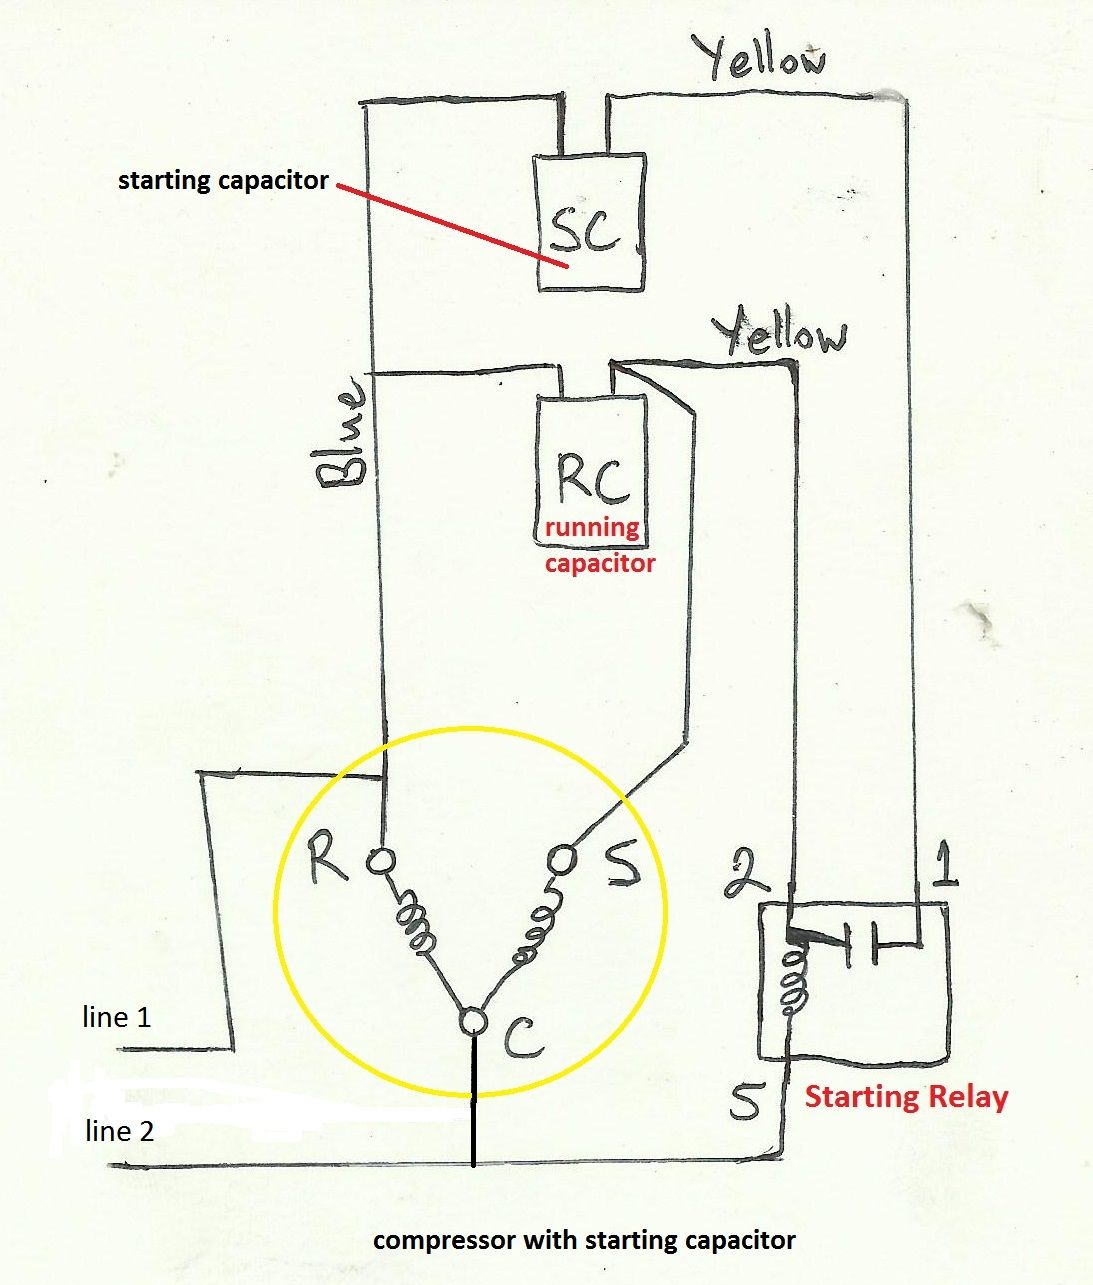 WRG-3427] 99 Yukon Compressor Clutch Wiring Diagram on